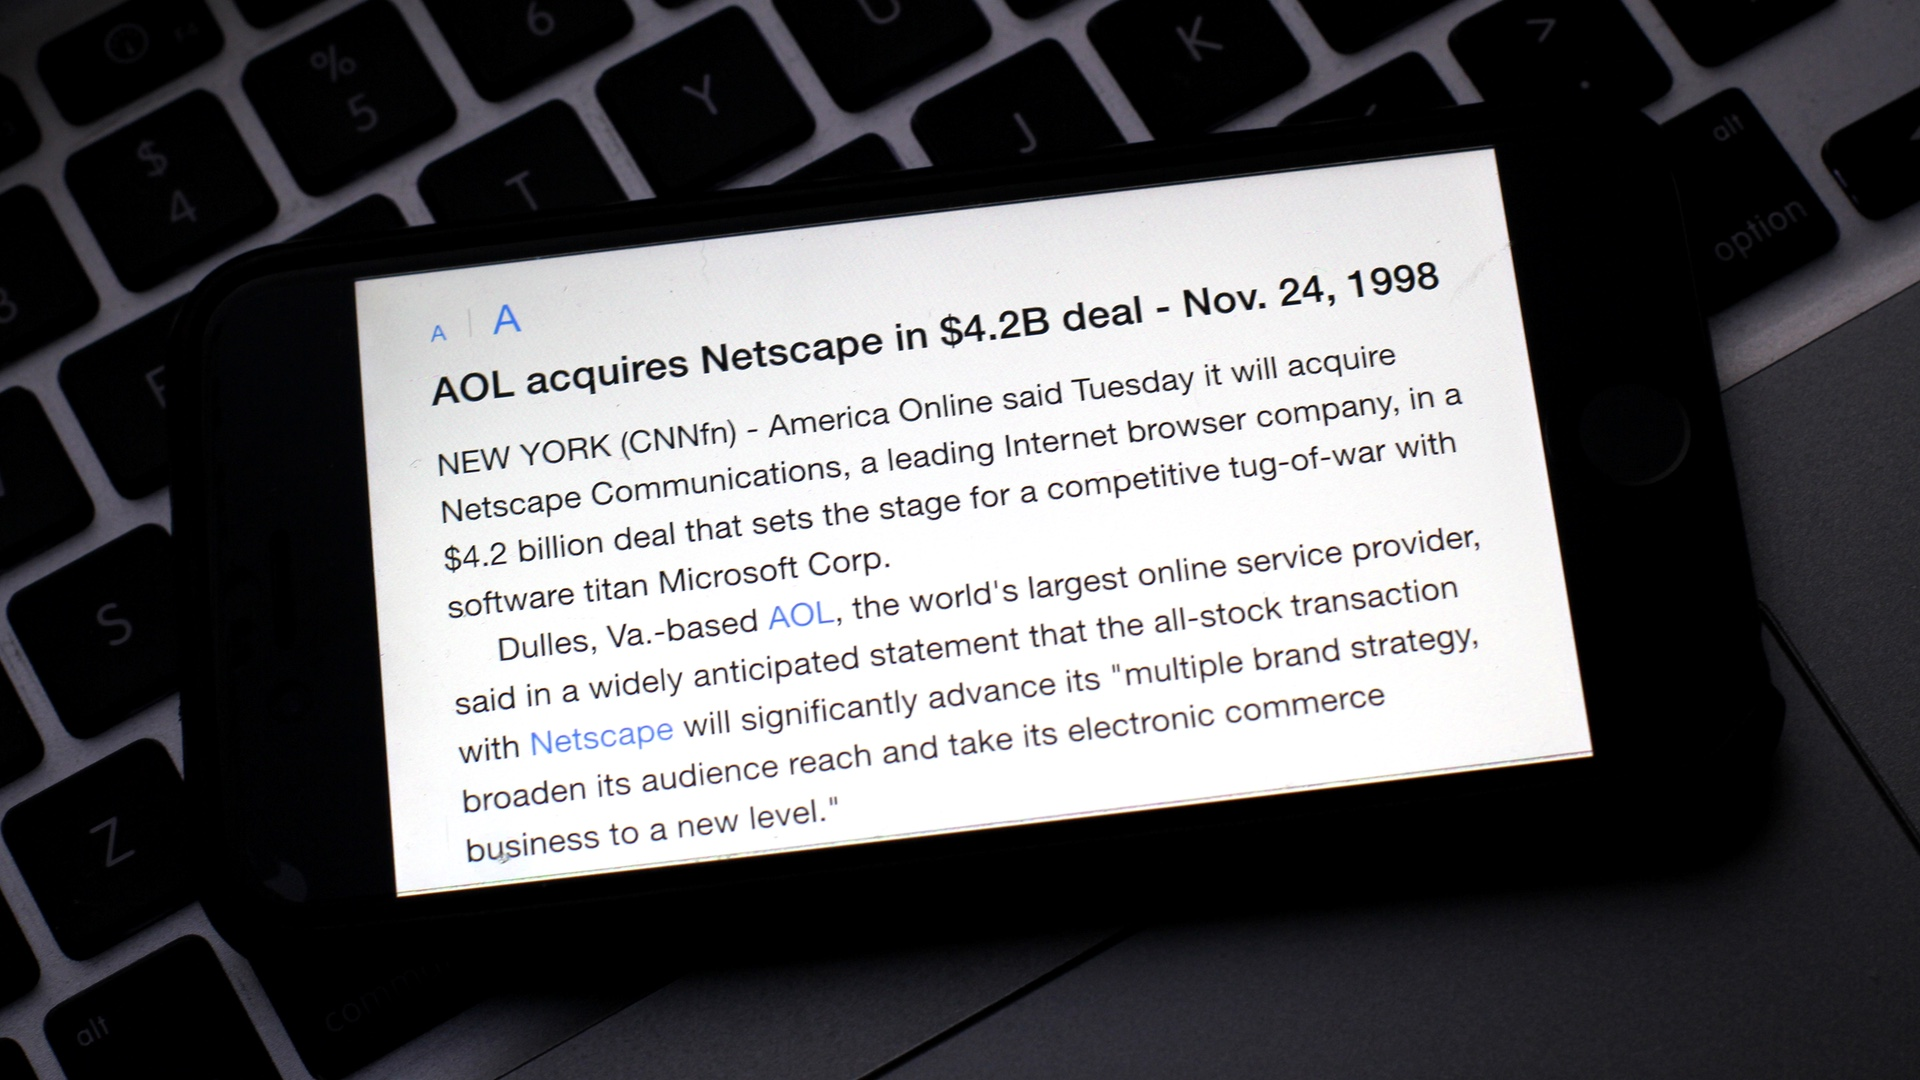 AOL Acquires Netscape 4.2 Billions 19981124